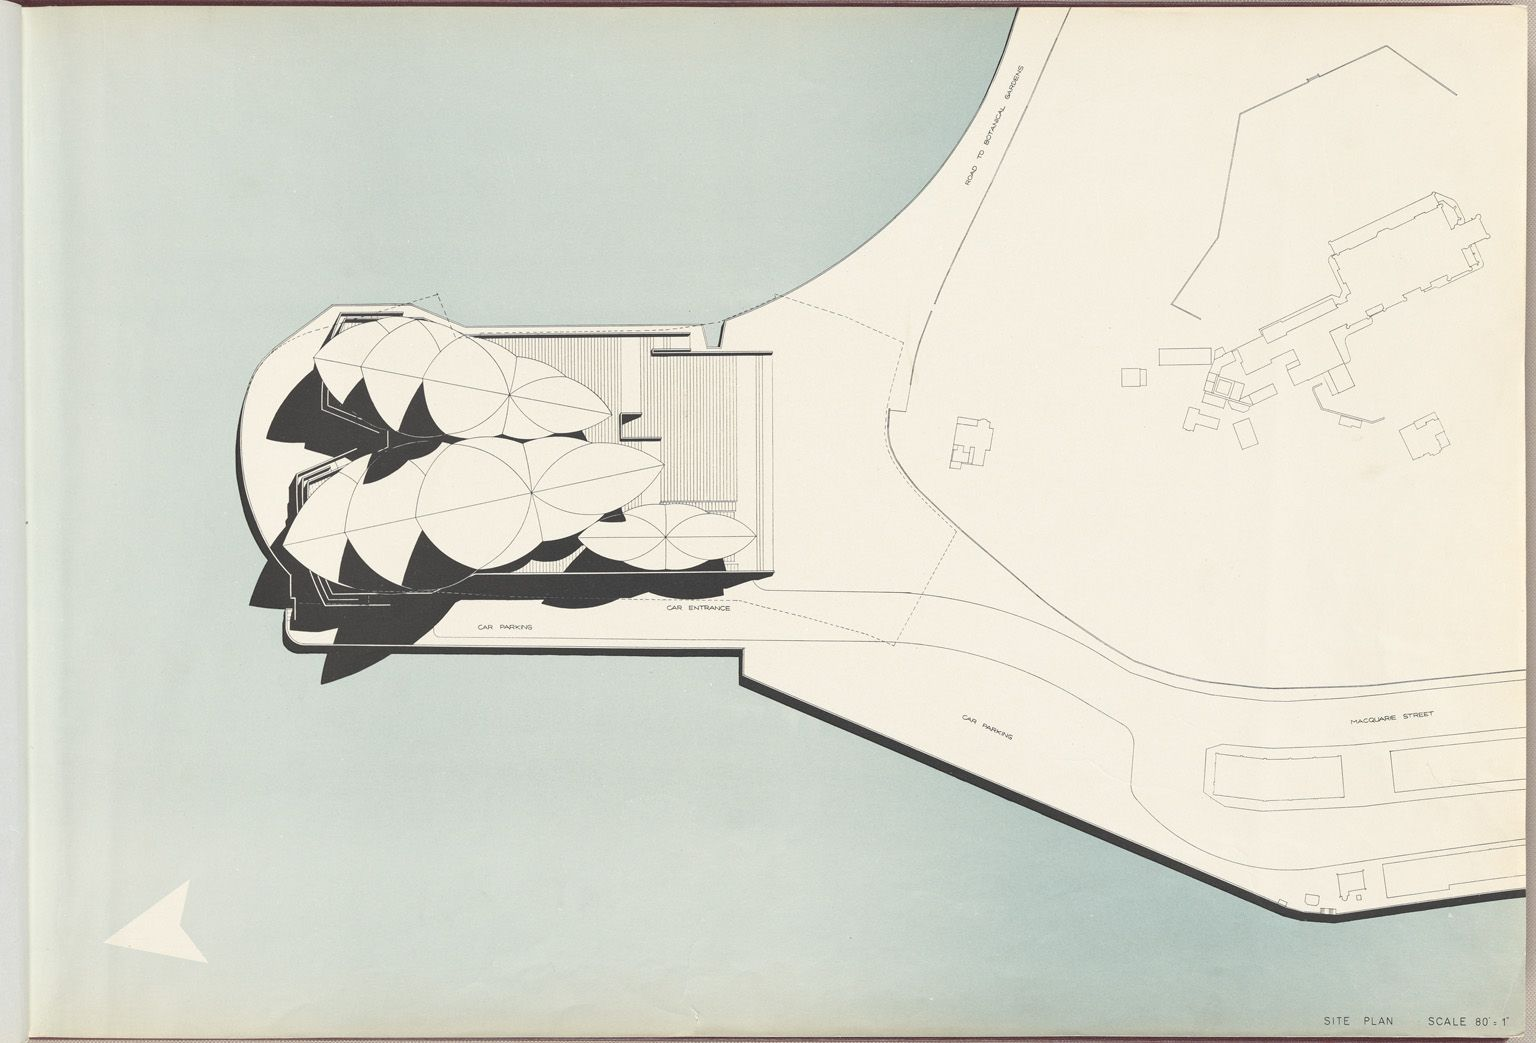 Site Plan Sydney Opera House From The Red Book A 1958 Report